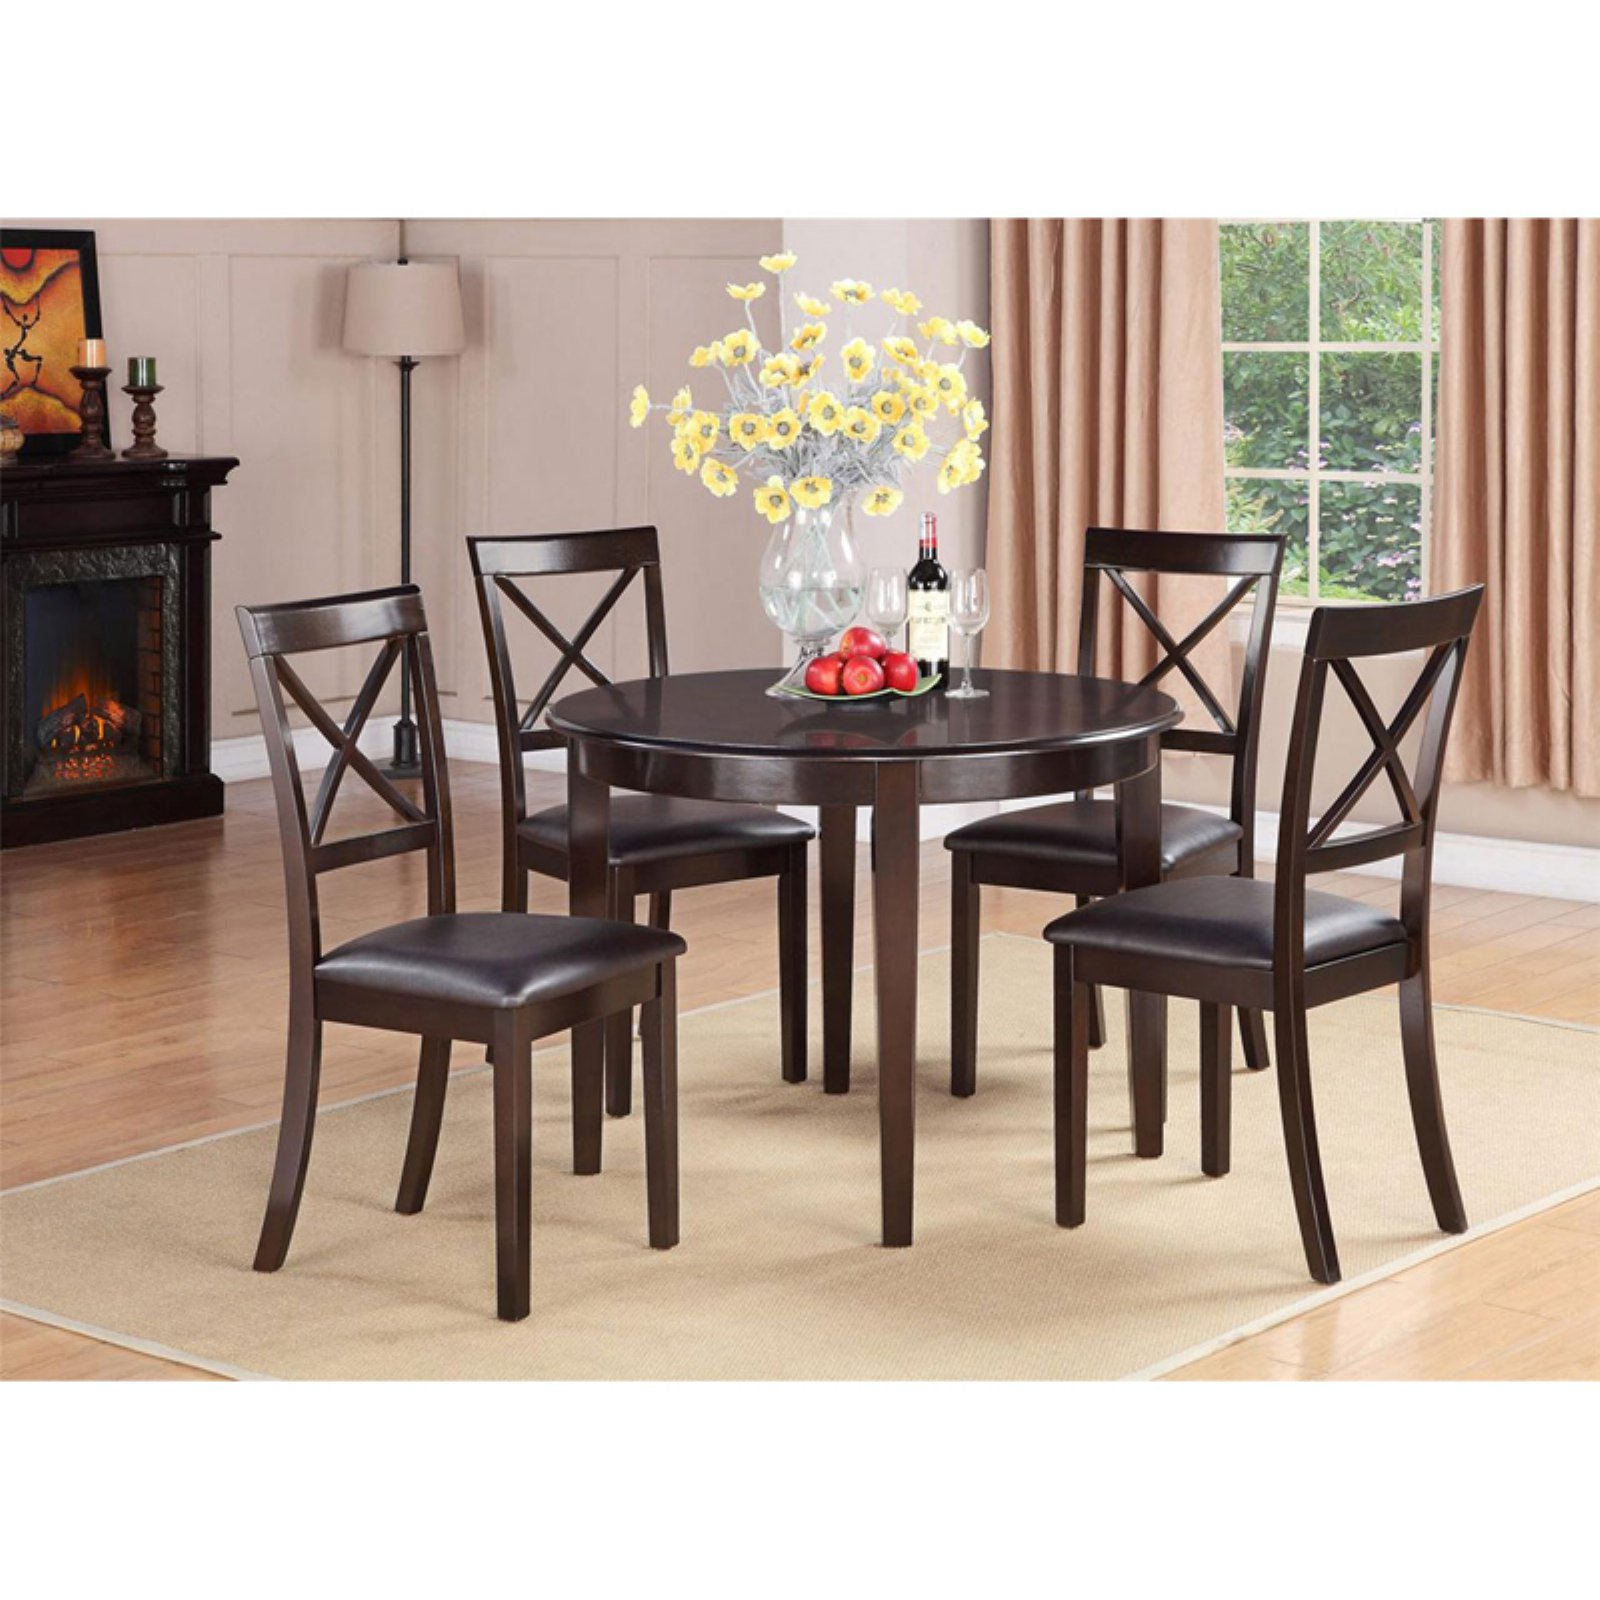 East West Furniture Boston 3 Piece Round Dining Table Set with Microfiber Seat Chairs